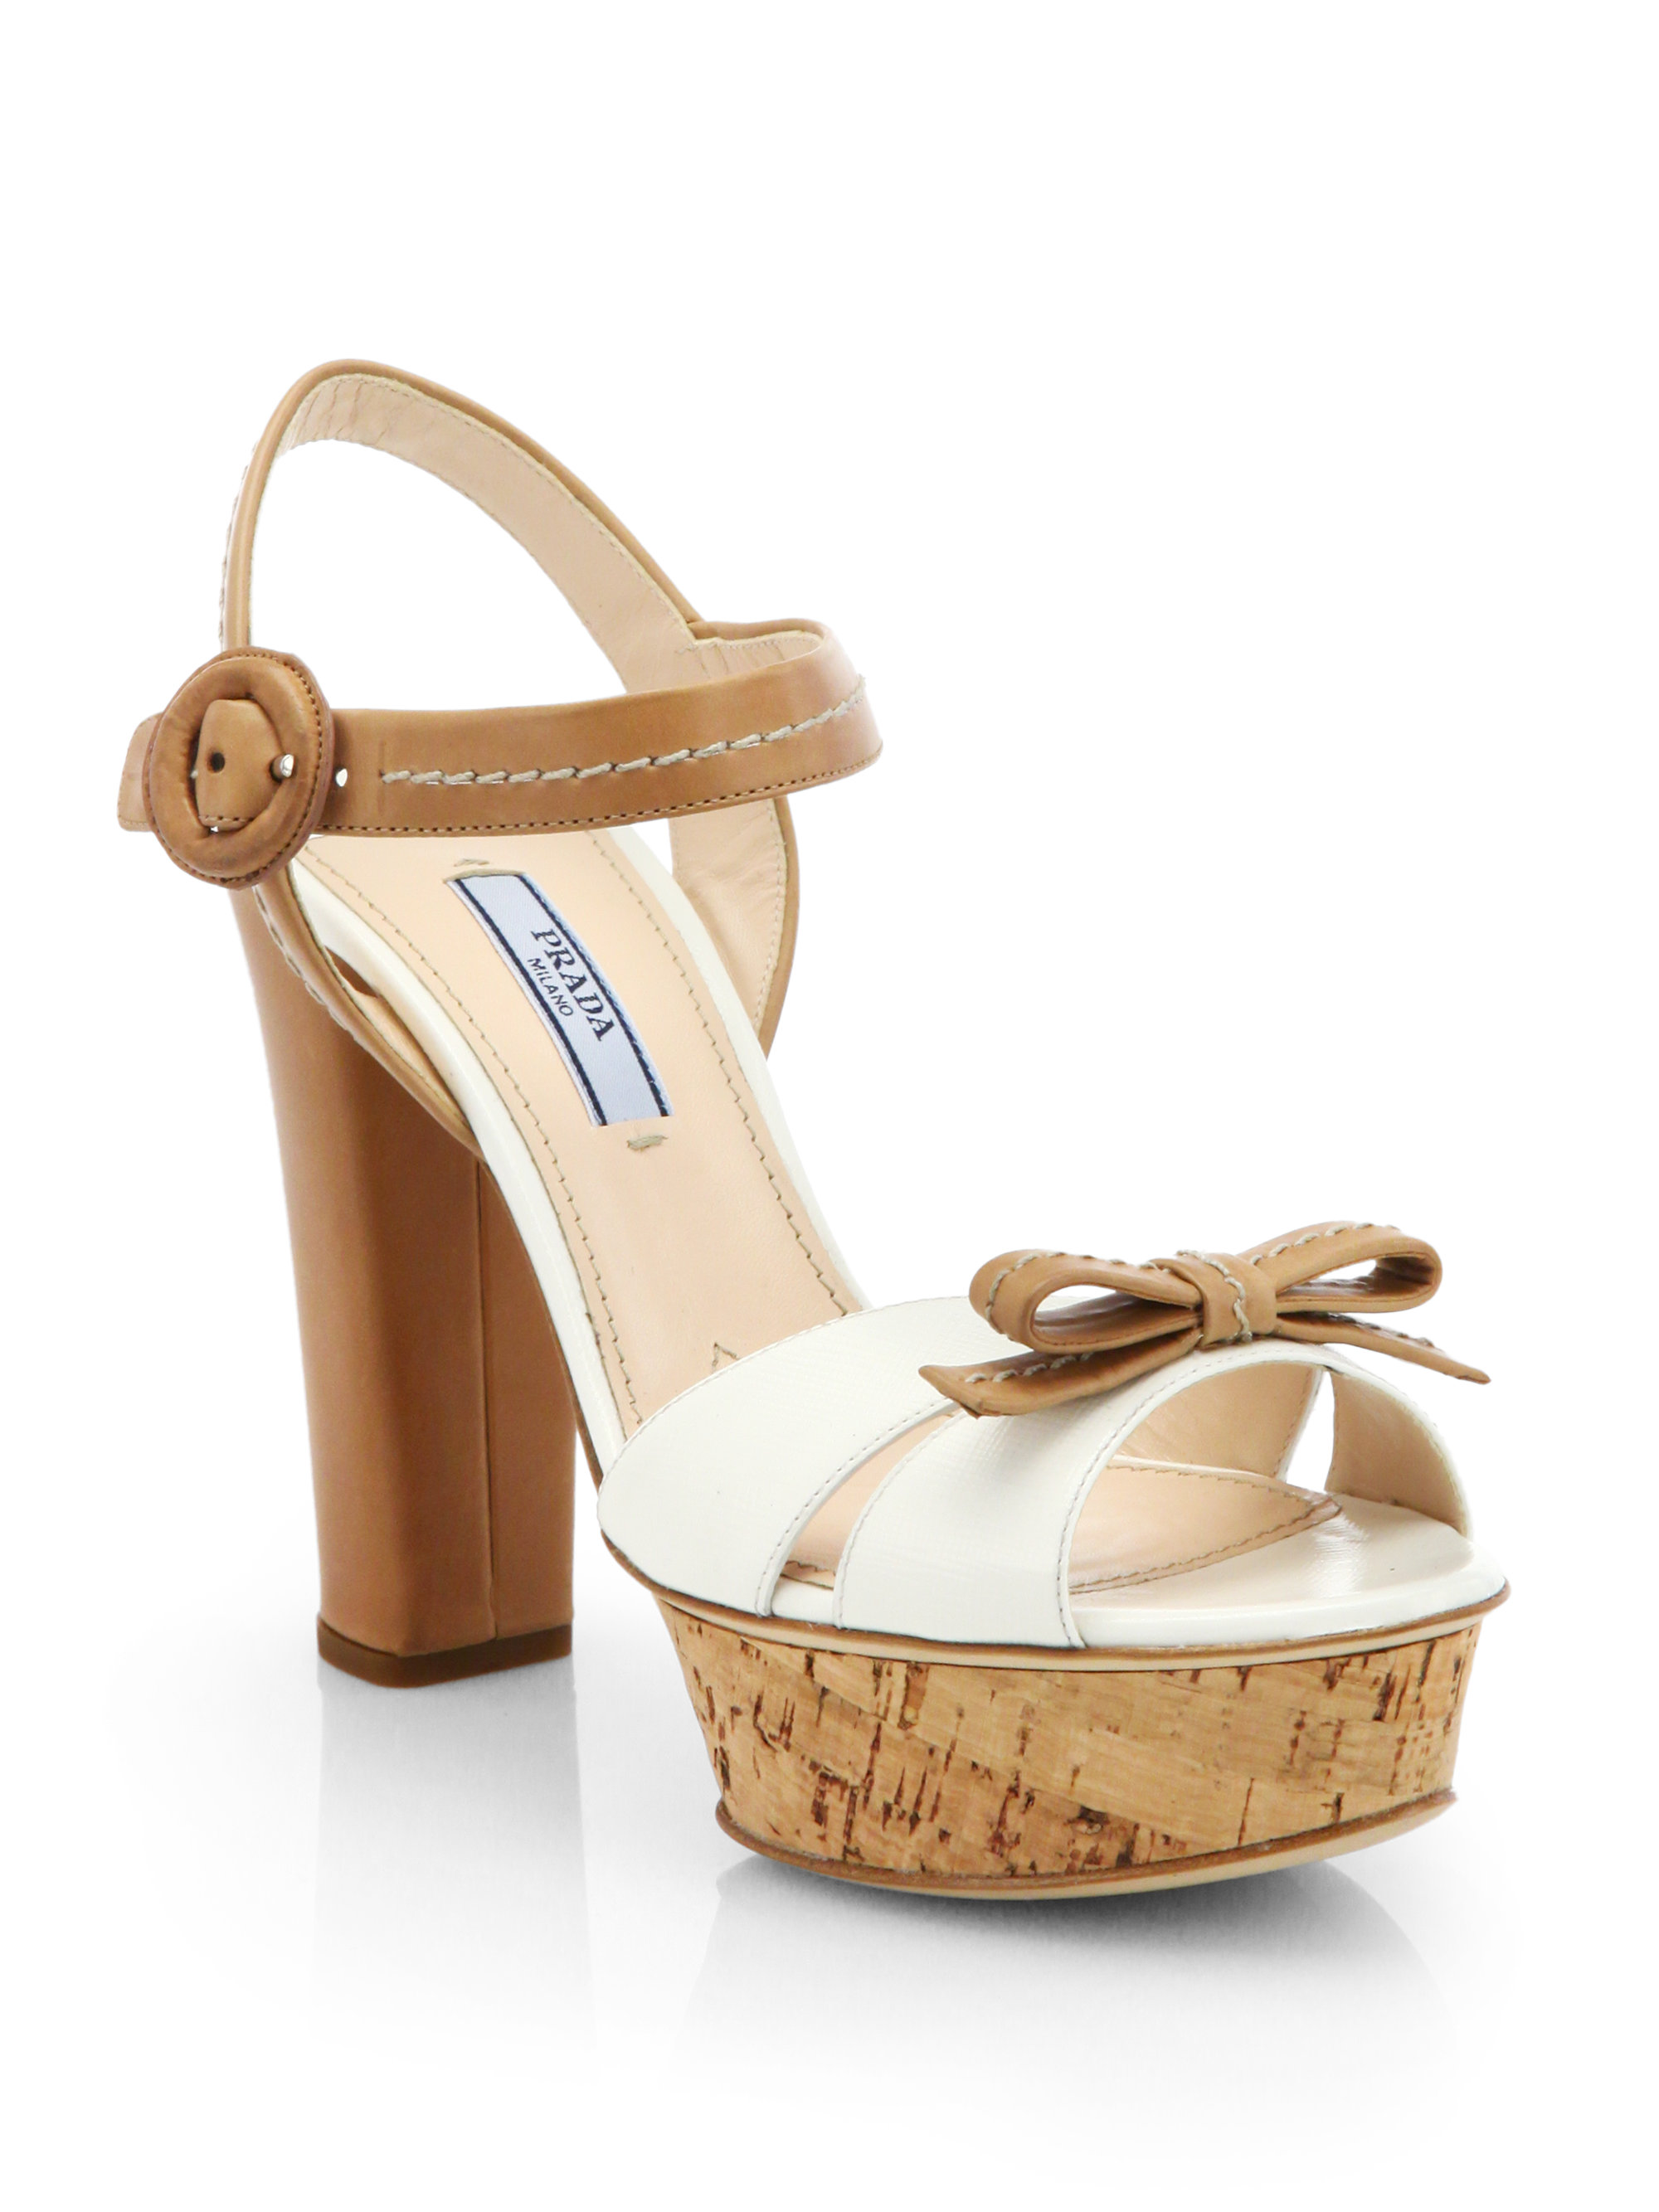 4fd9583a093 Lyst - Prada Bicolor Leather Cork Platform Sandals in White